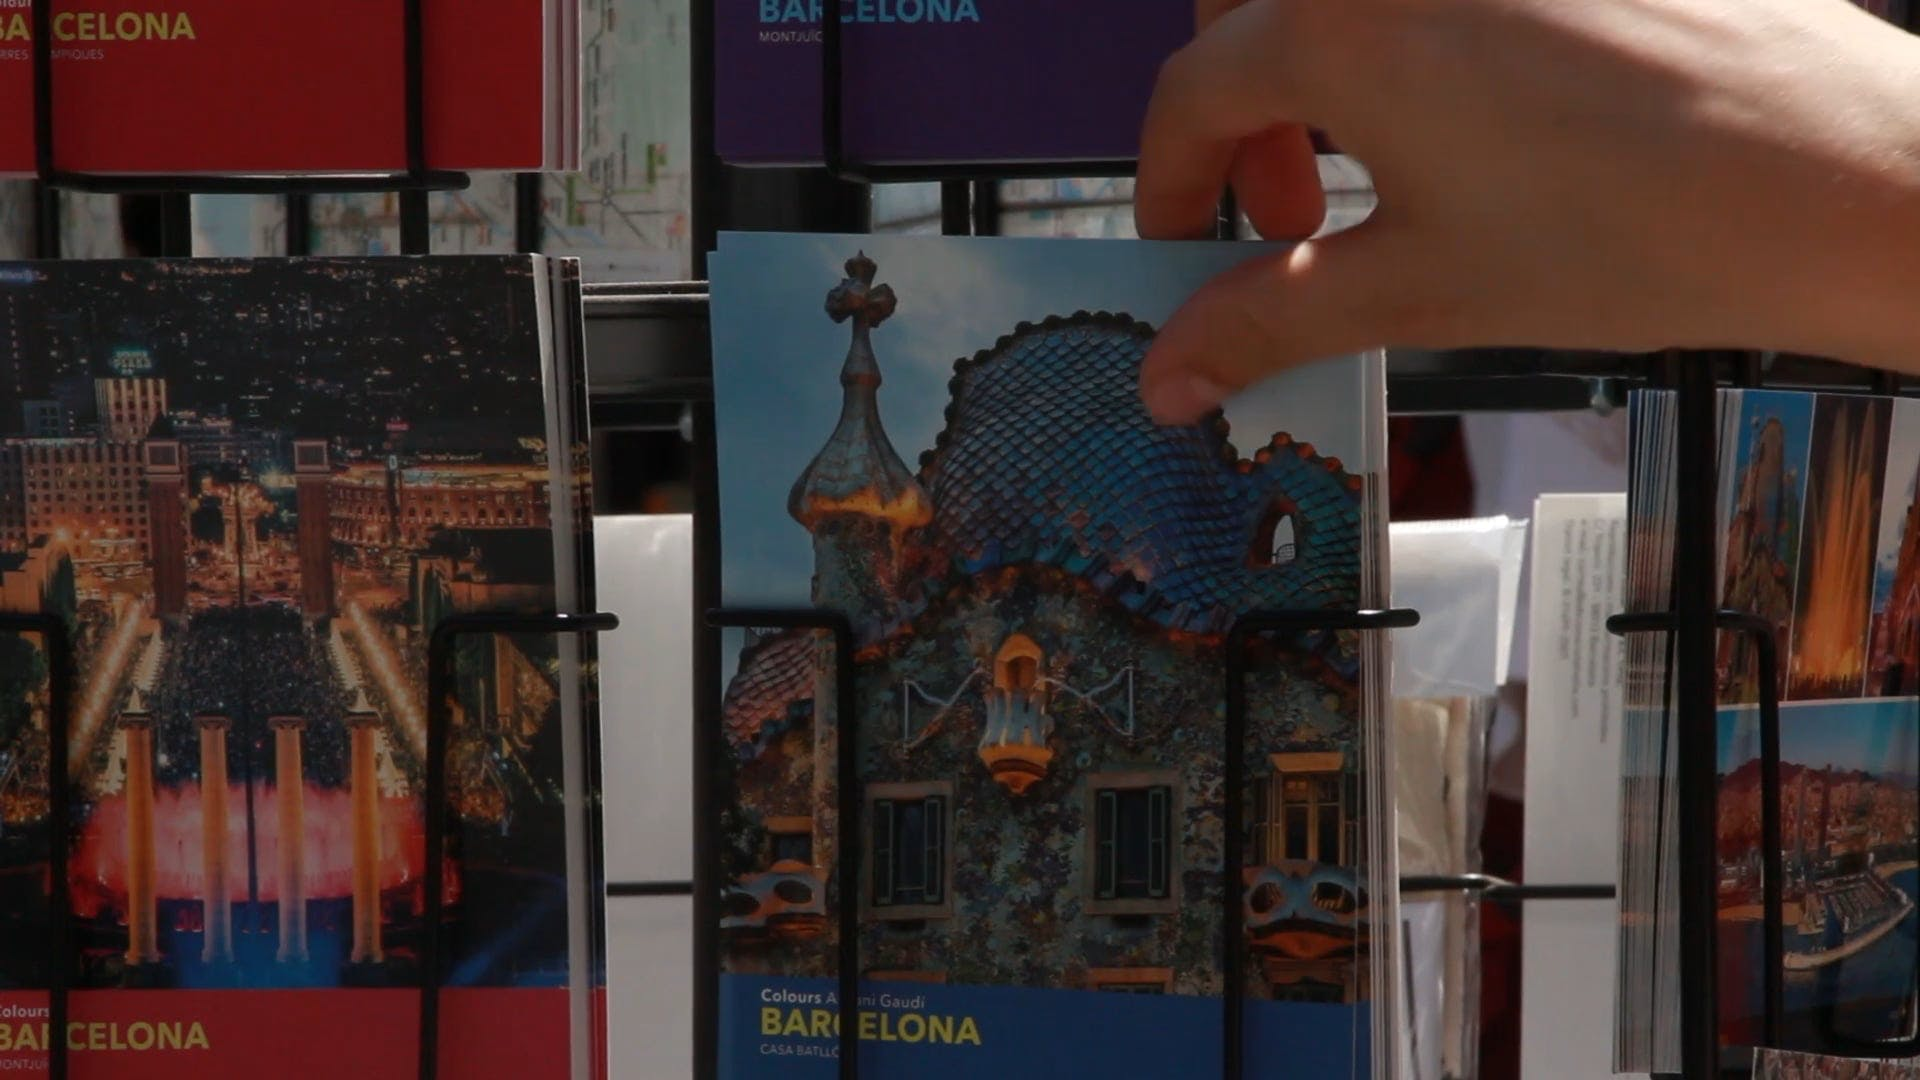 Video Of Postcards For Sale